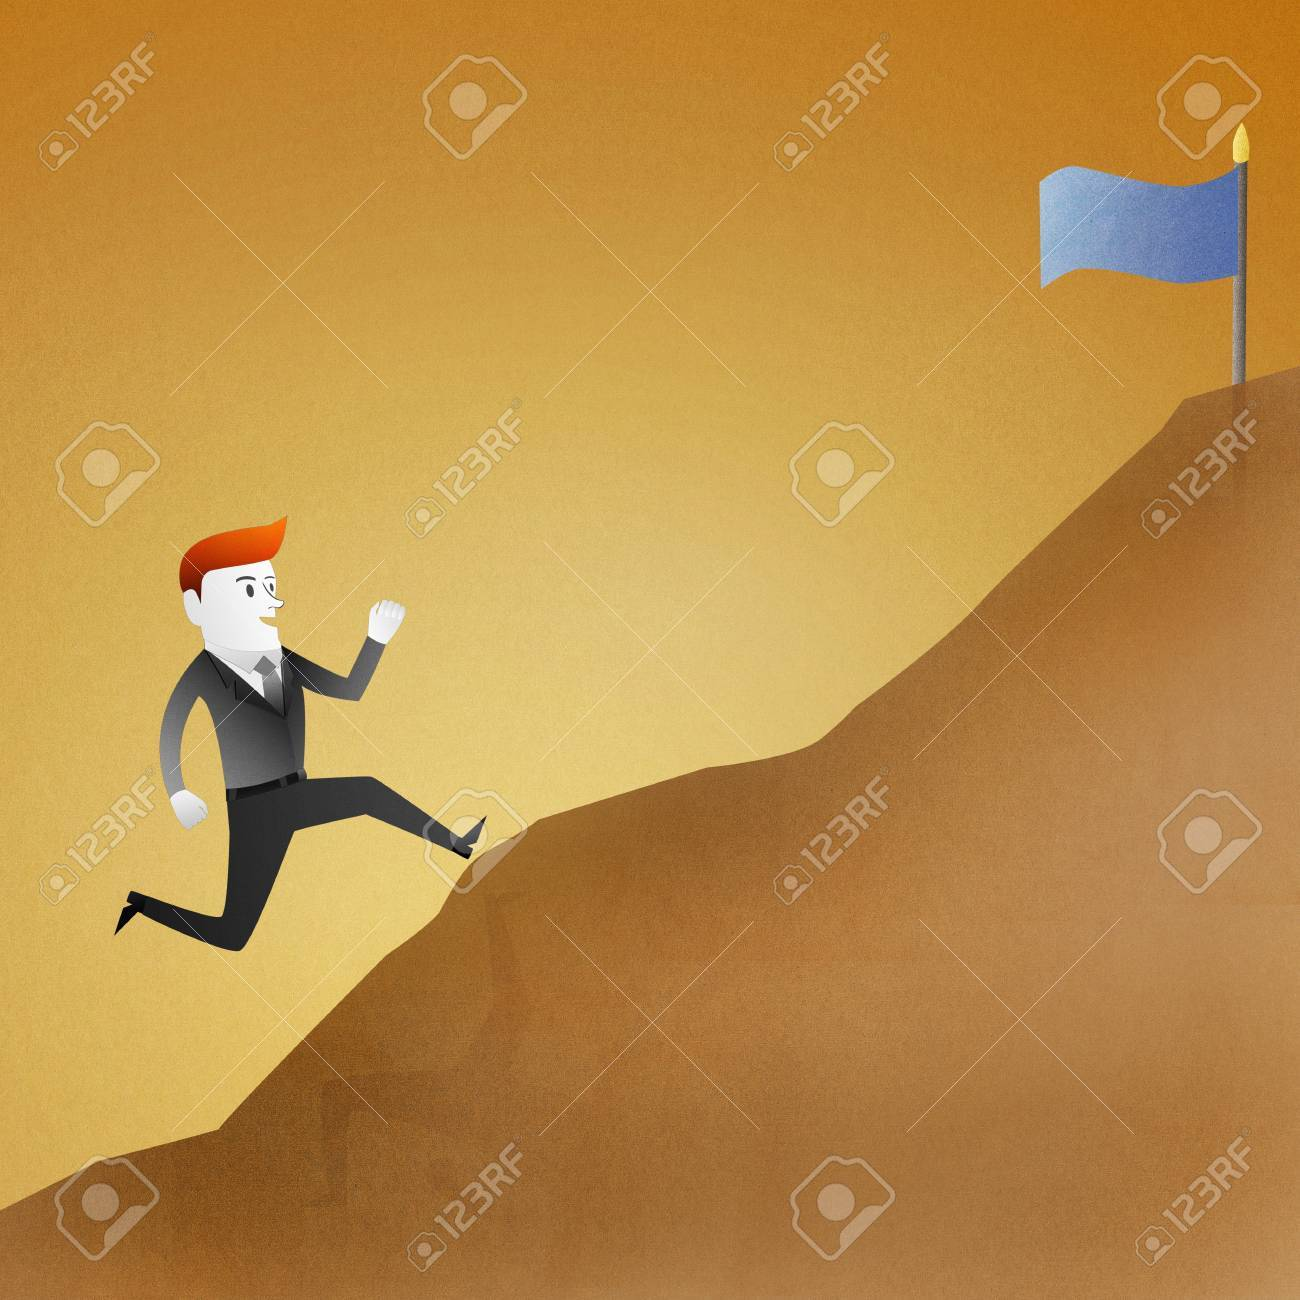 Conceptual image - Business man go running up mountain represent themes involving success Stock Photo - 14696726